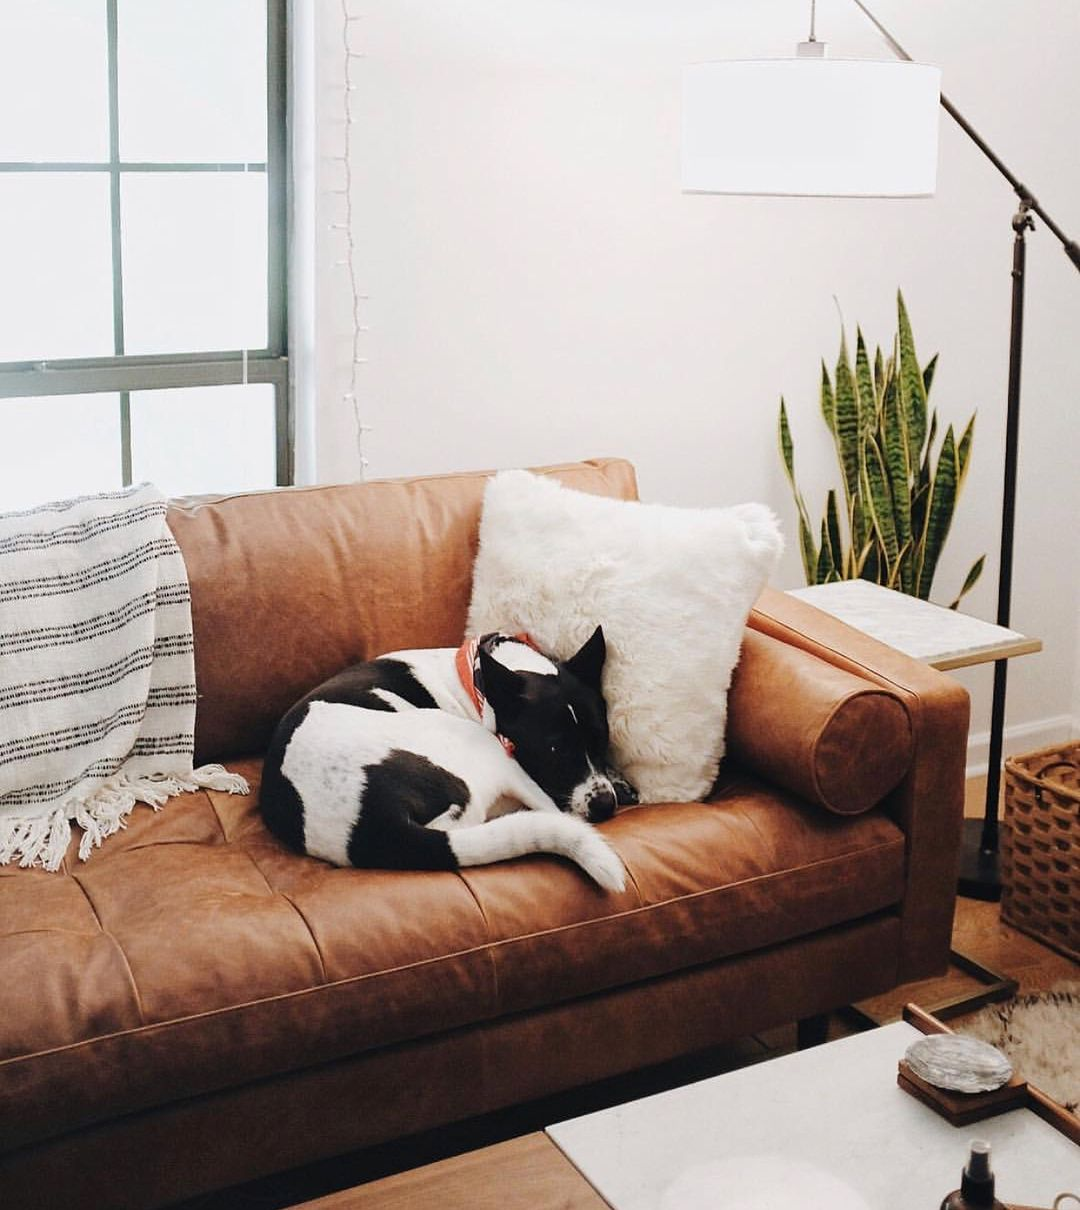 Poly Bark On Instagram Our Napa Leather Sofa Is Approved By Bychloewen S Adorable Puppy We Re So Happy She S E Poly Bark Leather Sofa Leather Couch